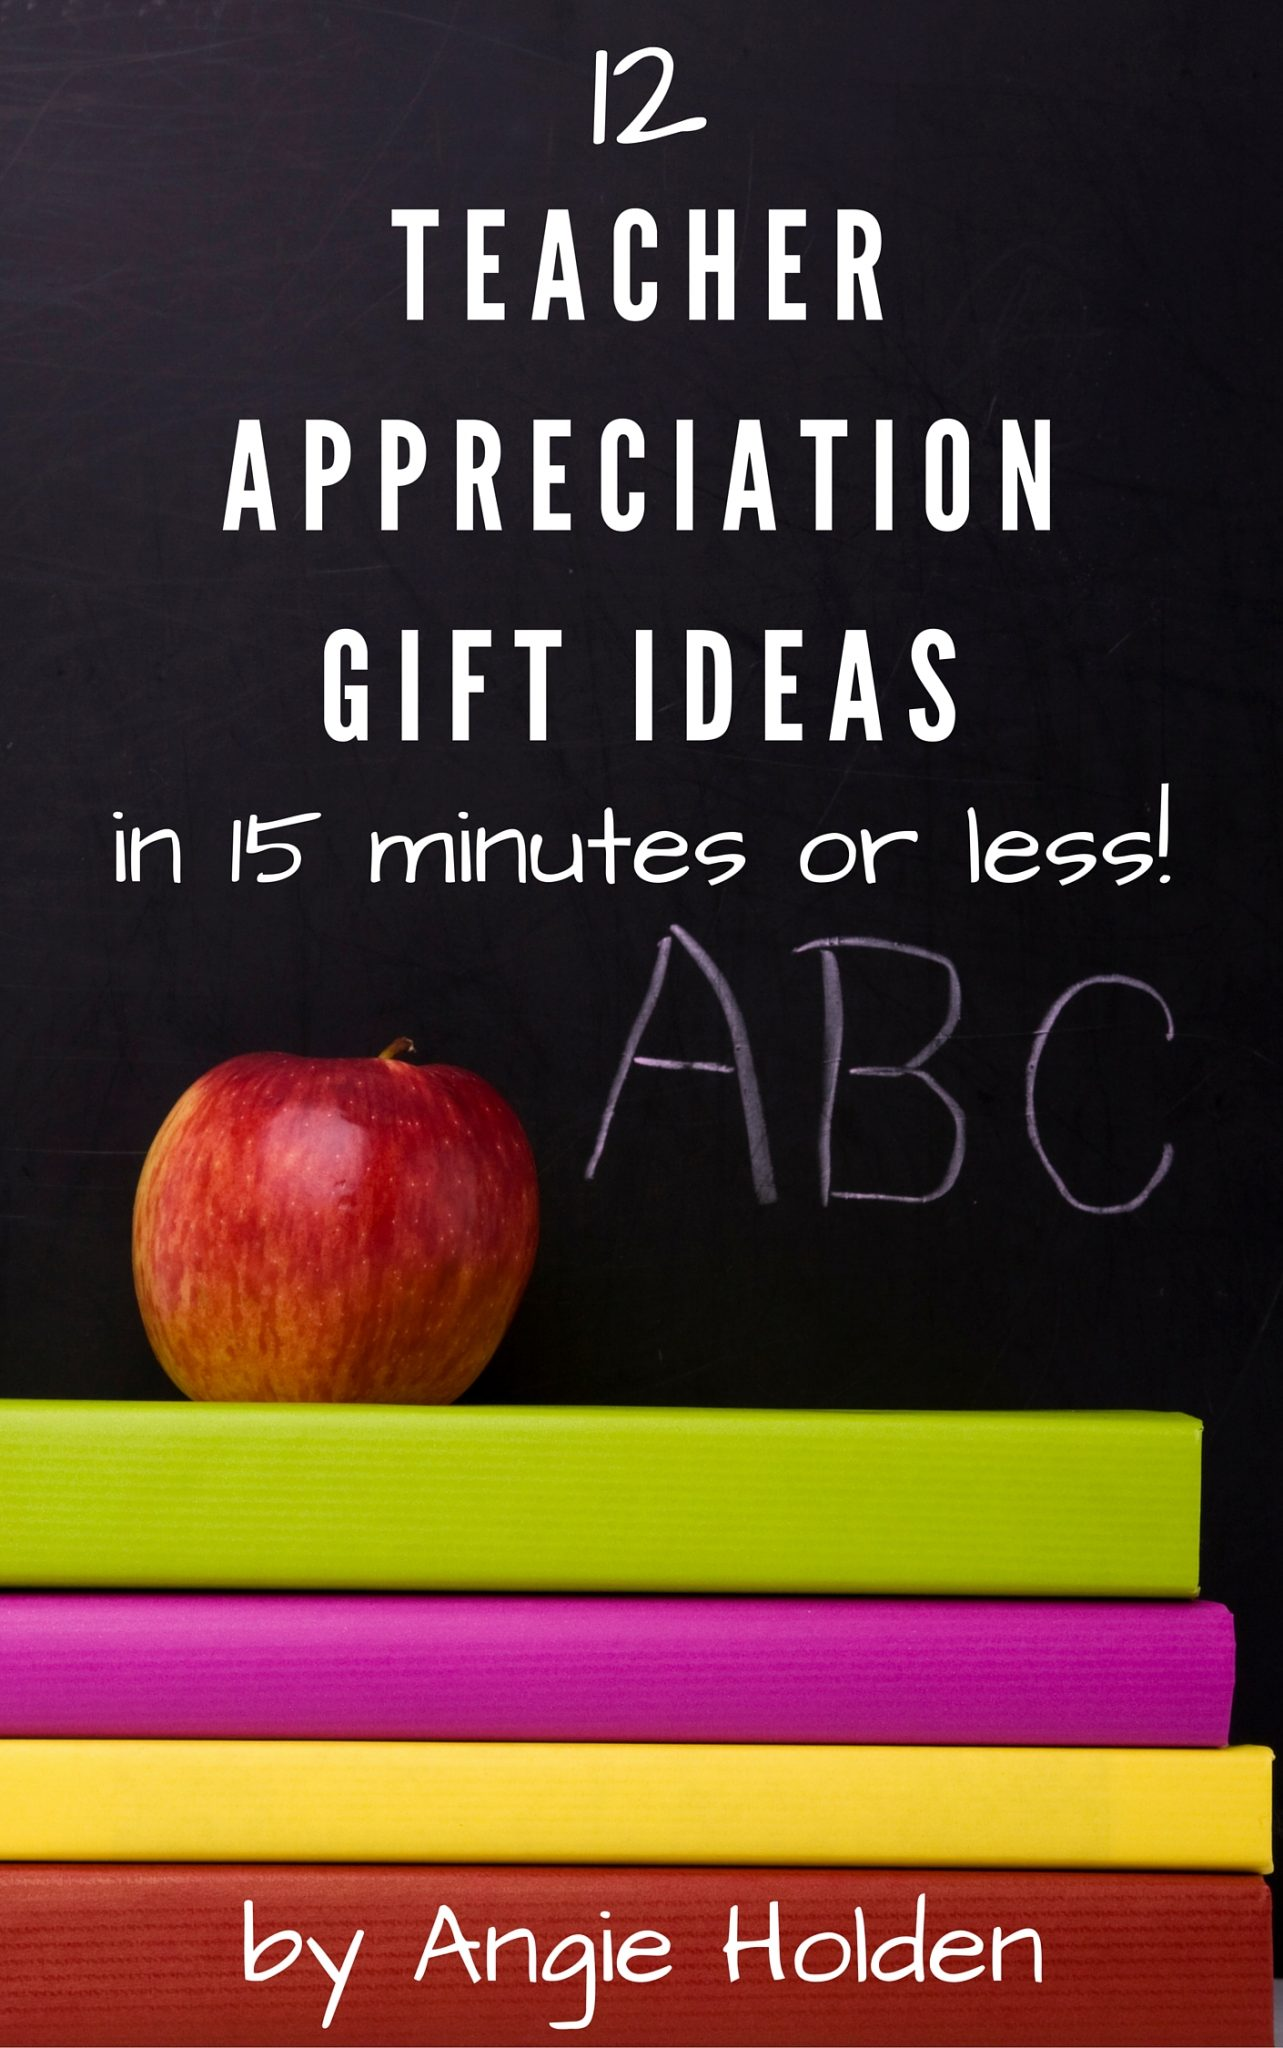 10 free printable teacher gift ideas! Great ideas for gifts that are free to print in your home! Great for Teacher Appreciation Week!